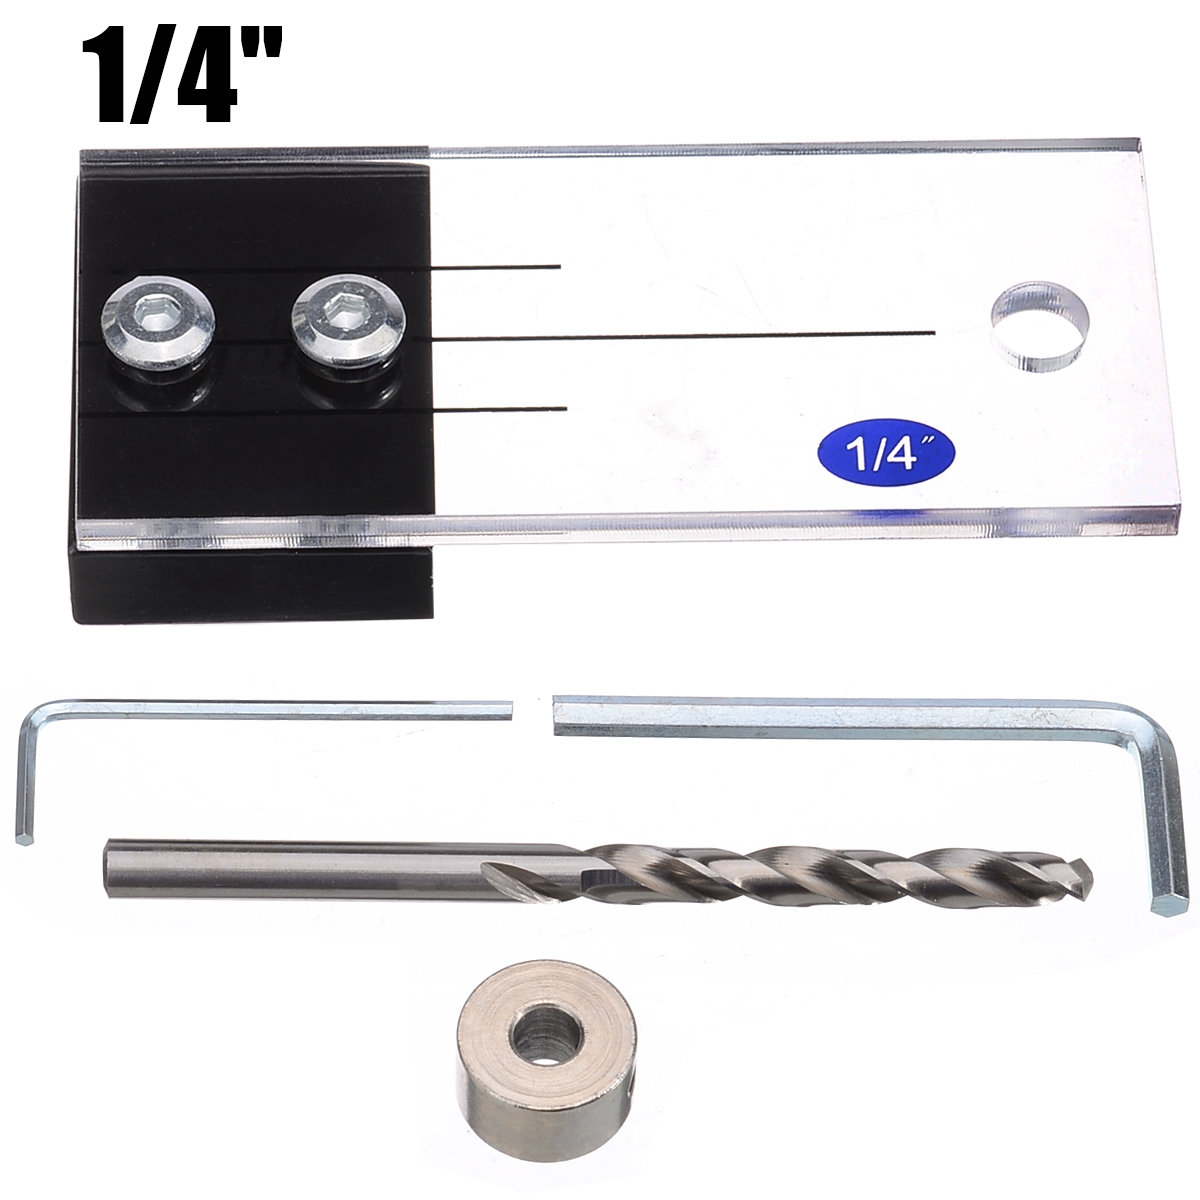 "New 1/4"" Dowel Drilling Jig Kit Wood Drilling Guide Hole Locator High Hardness Woodworking Tool For DIY Carpentry Tools"